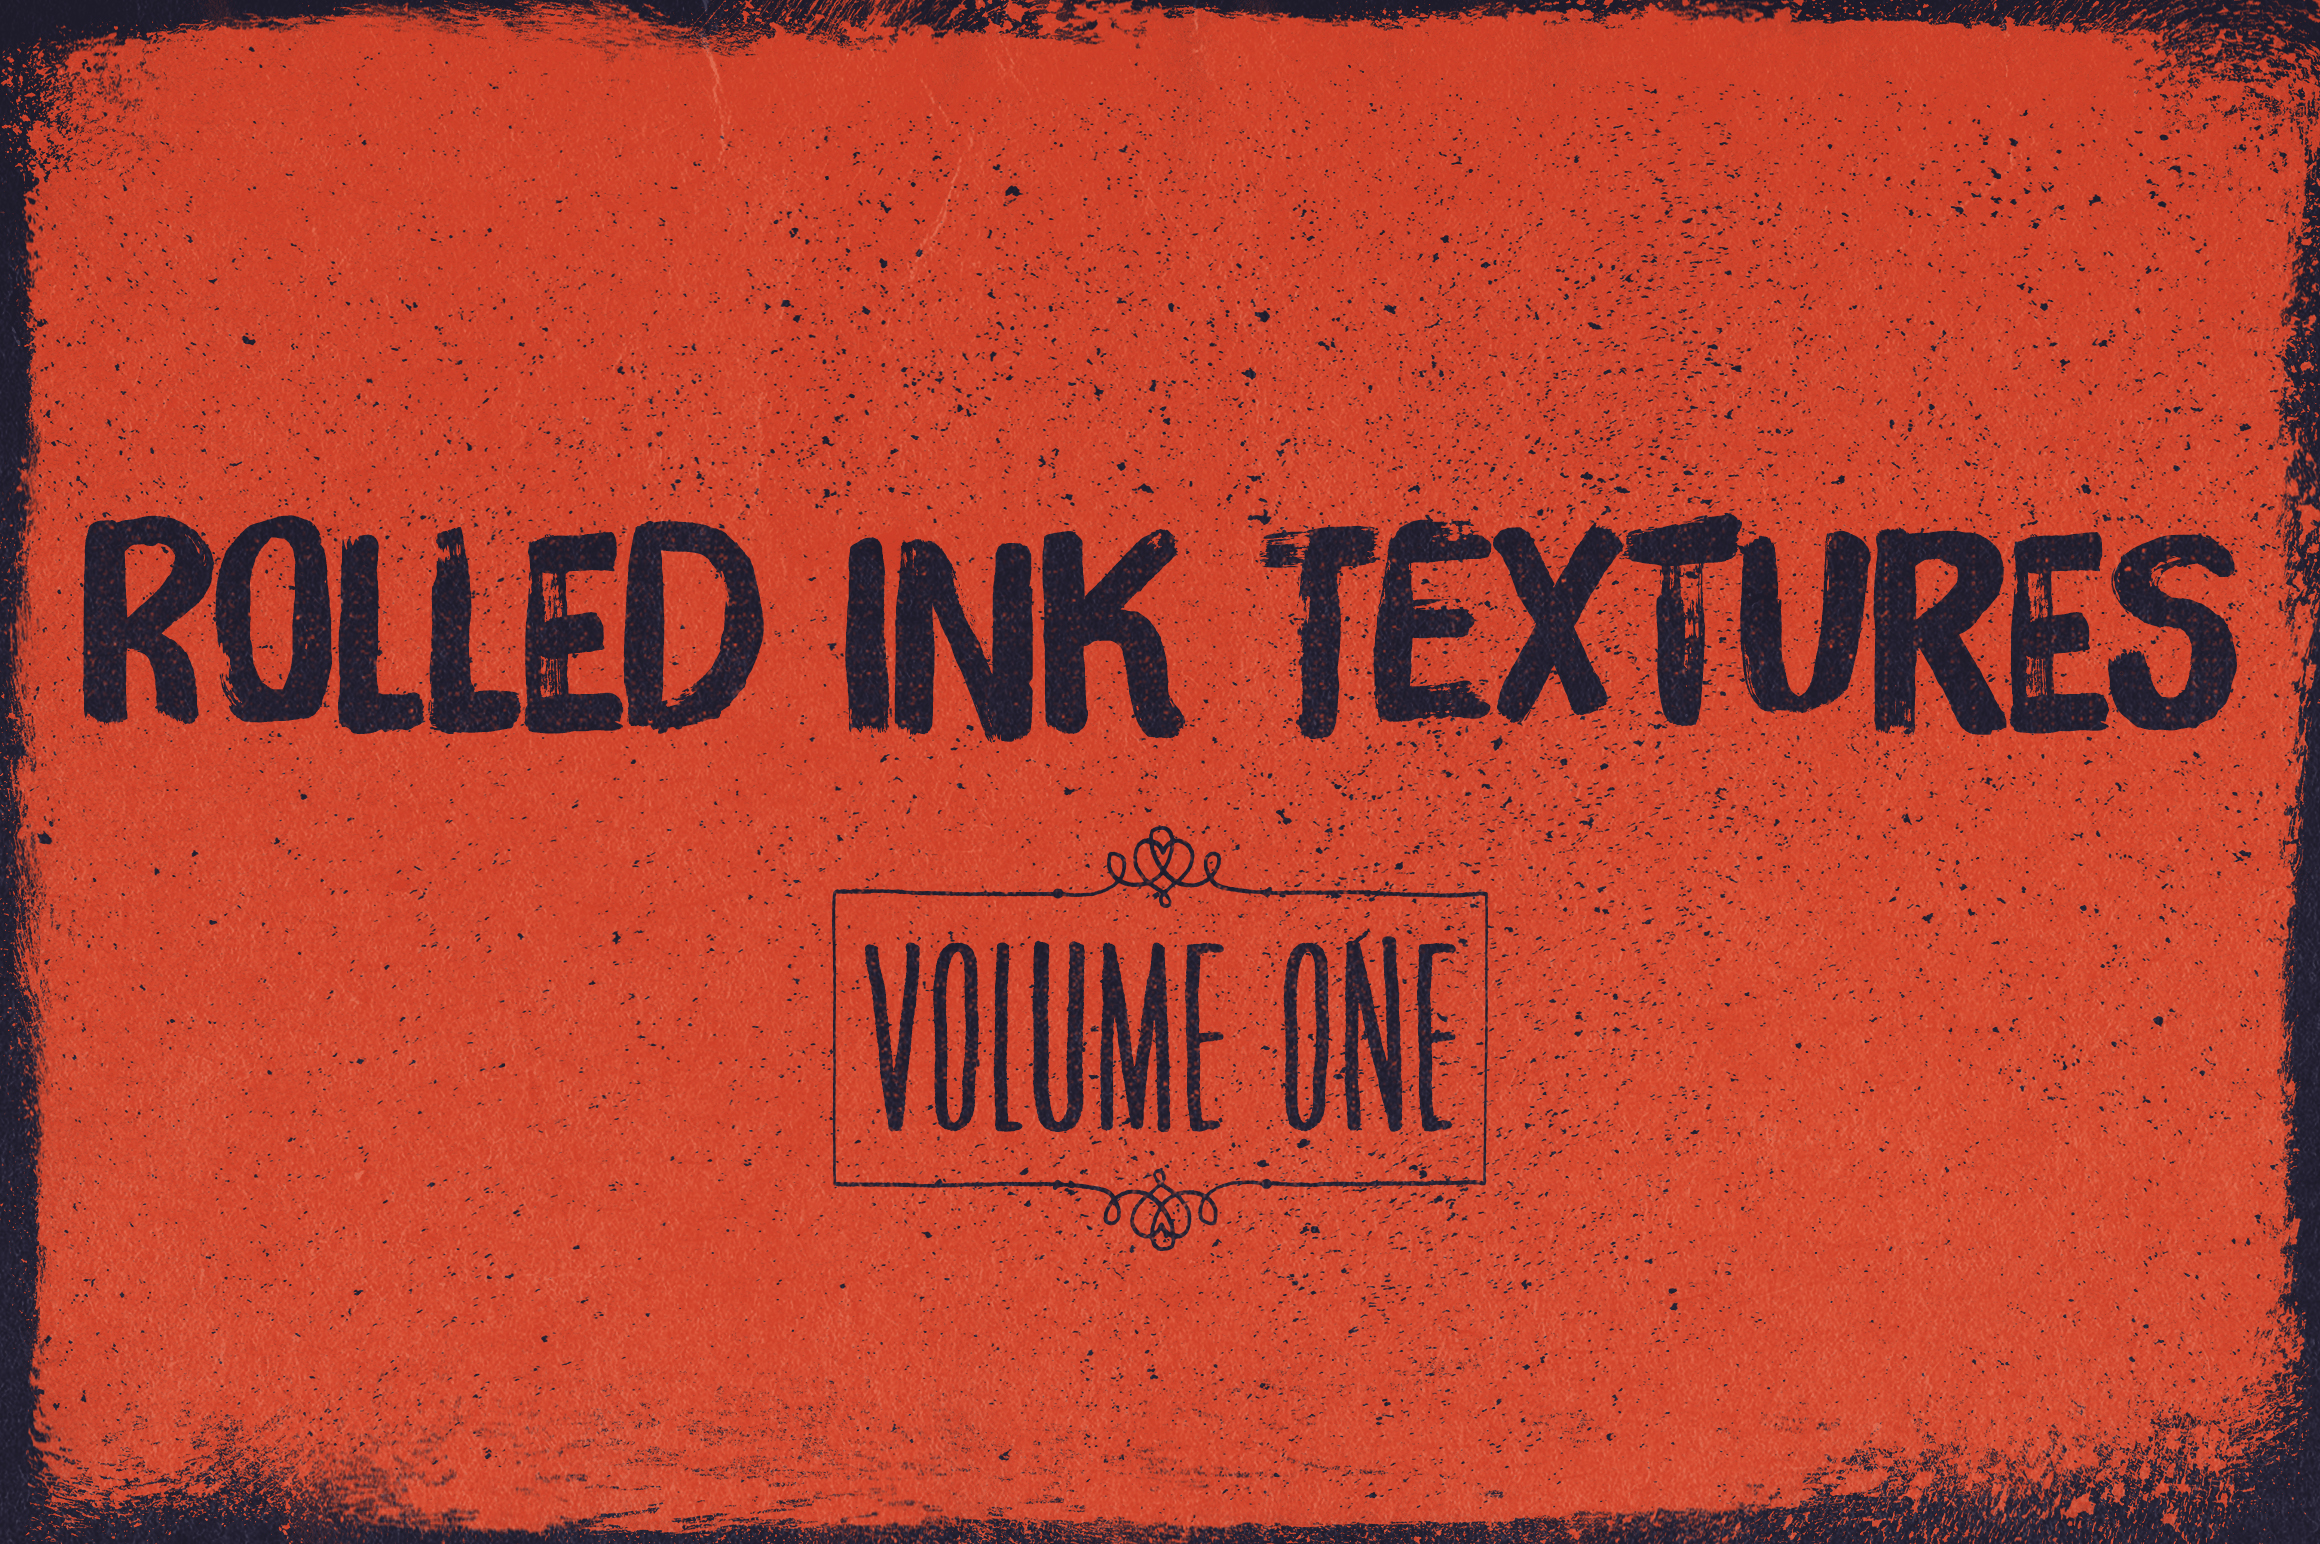 Rolled Ink Textures Volume 01 Graphic Textures By theshopdesignstudio